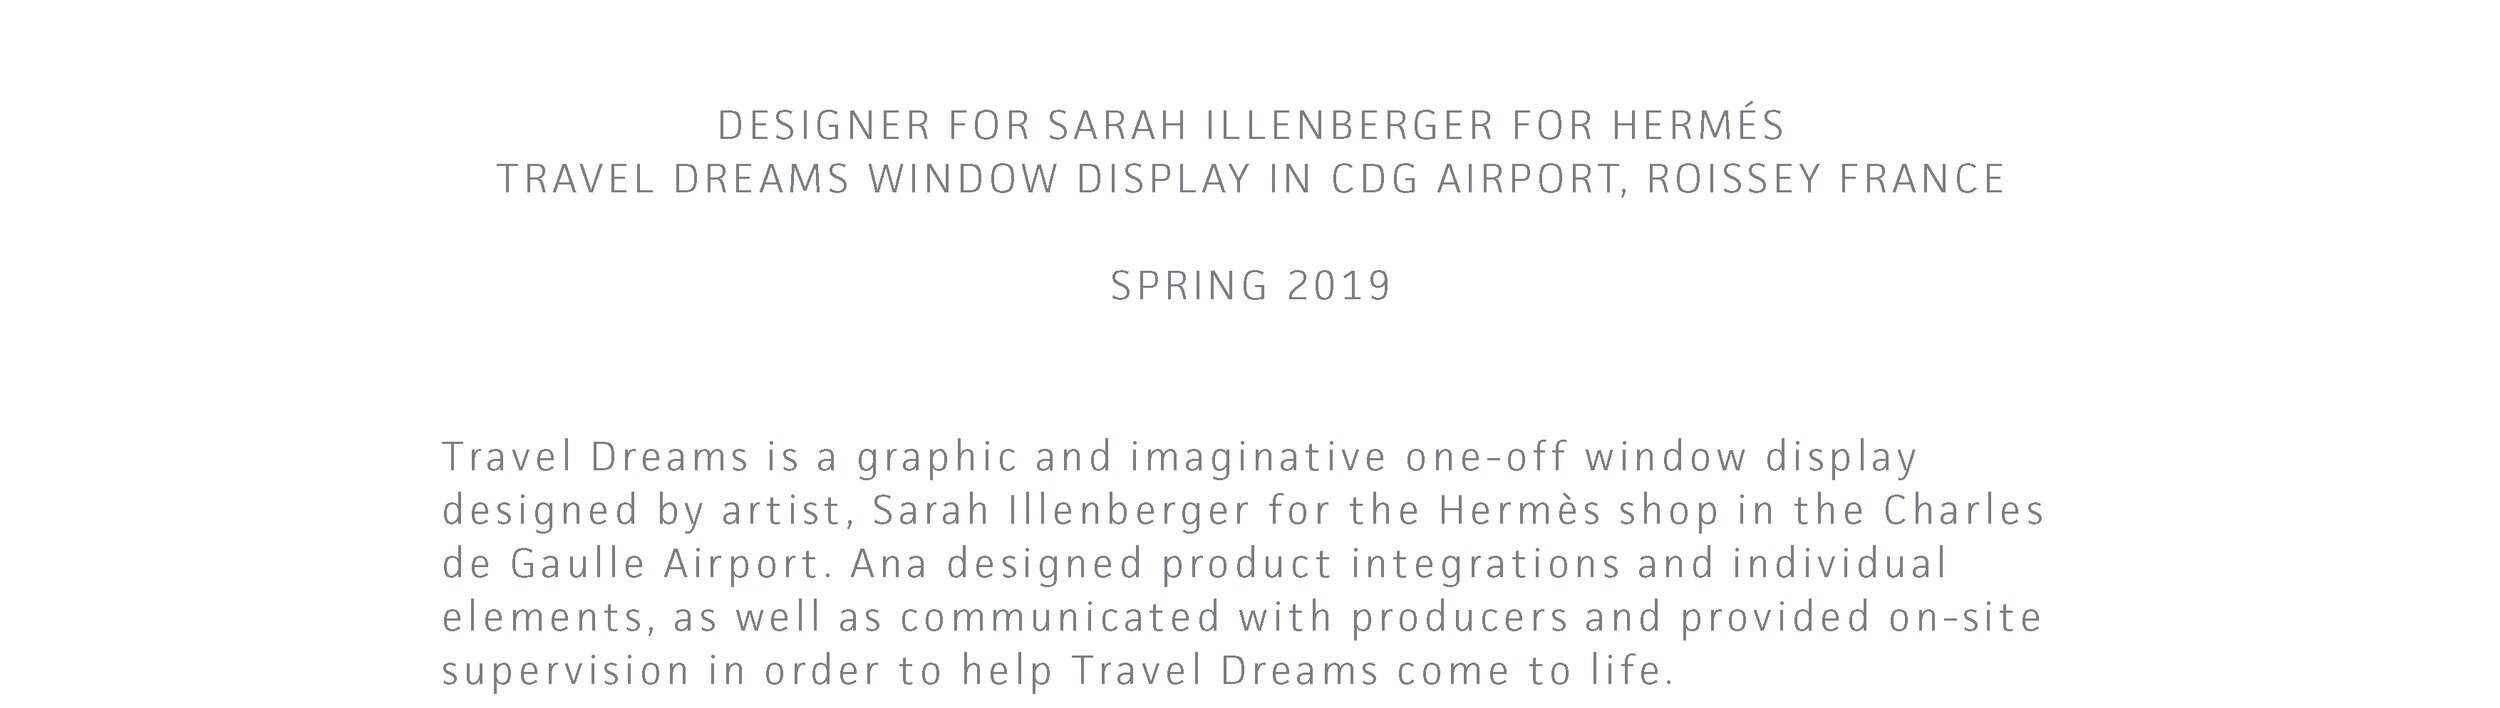 Hermes+Travel+Dreams+title+page+with+Summary.jpg